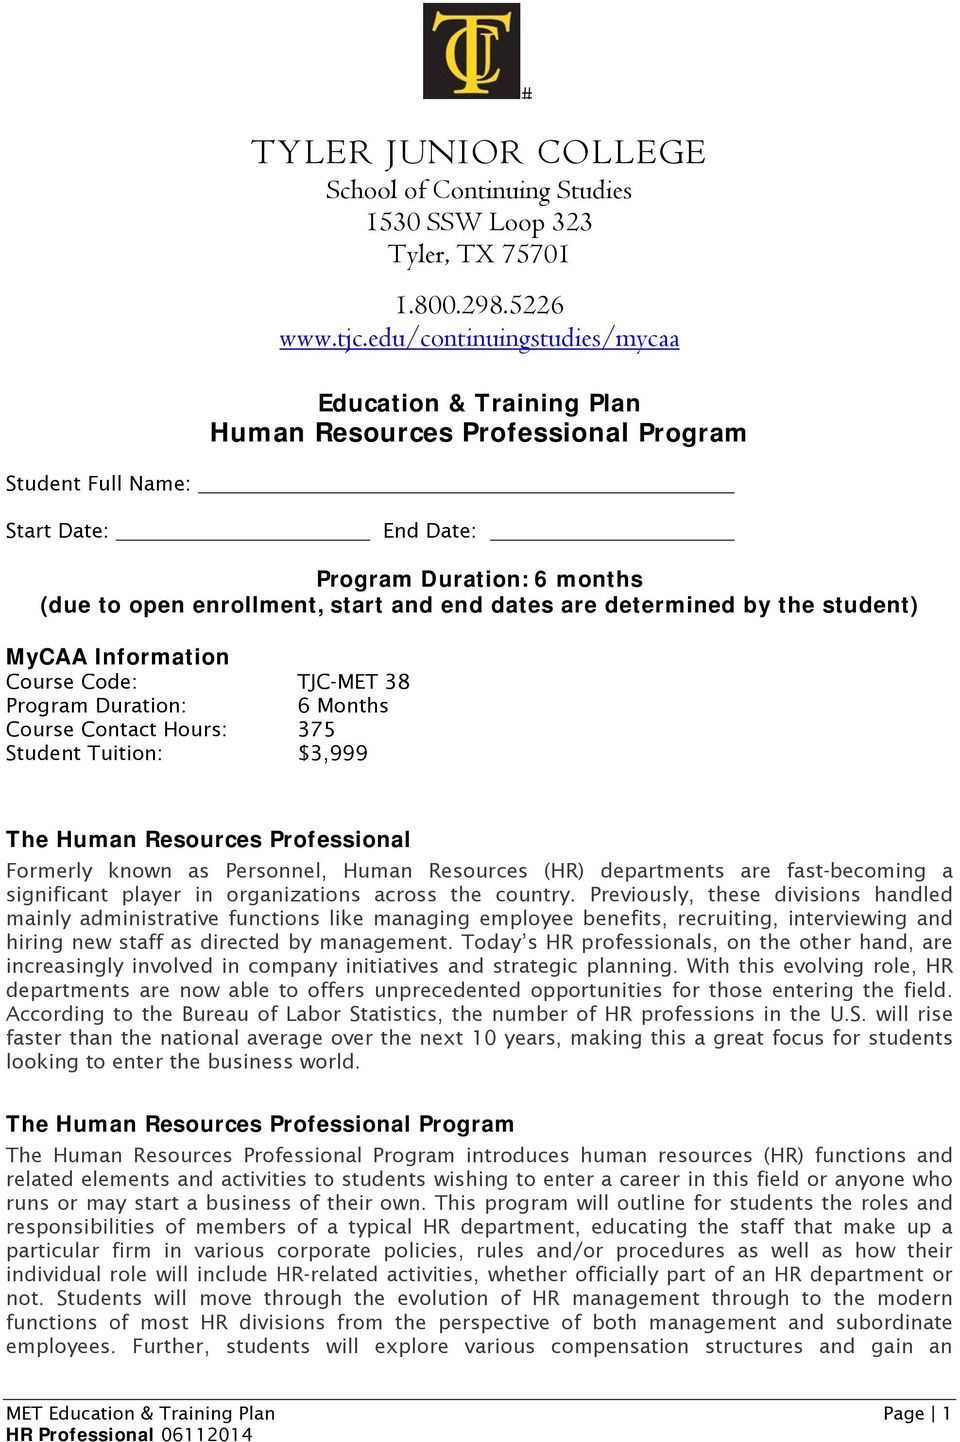 dates are determined by the student) MyCAA Information Course Code: TJC-MET 38 Program Duration: 6 Months Course Contact Hours: 375 Student Tuition: $3,999 The Human Resources Professional Formerly